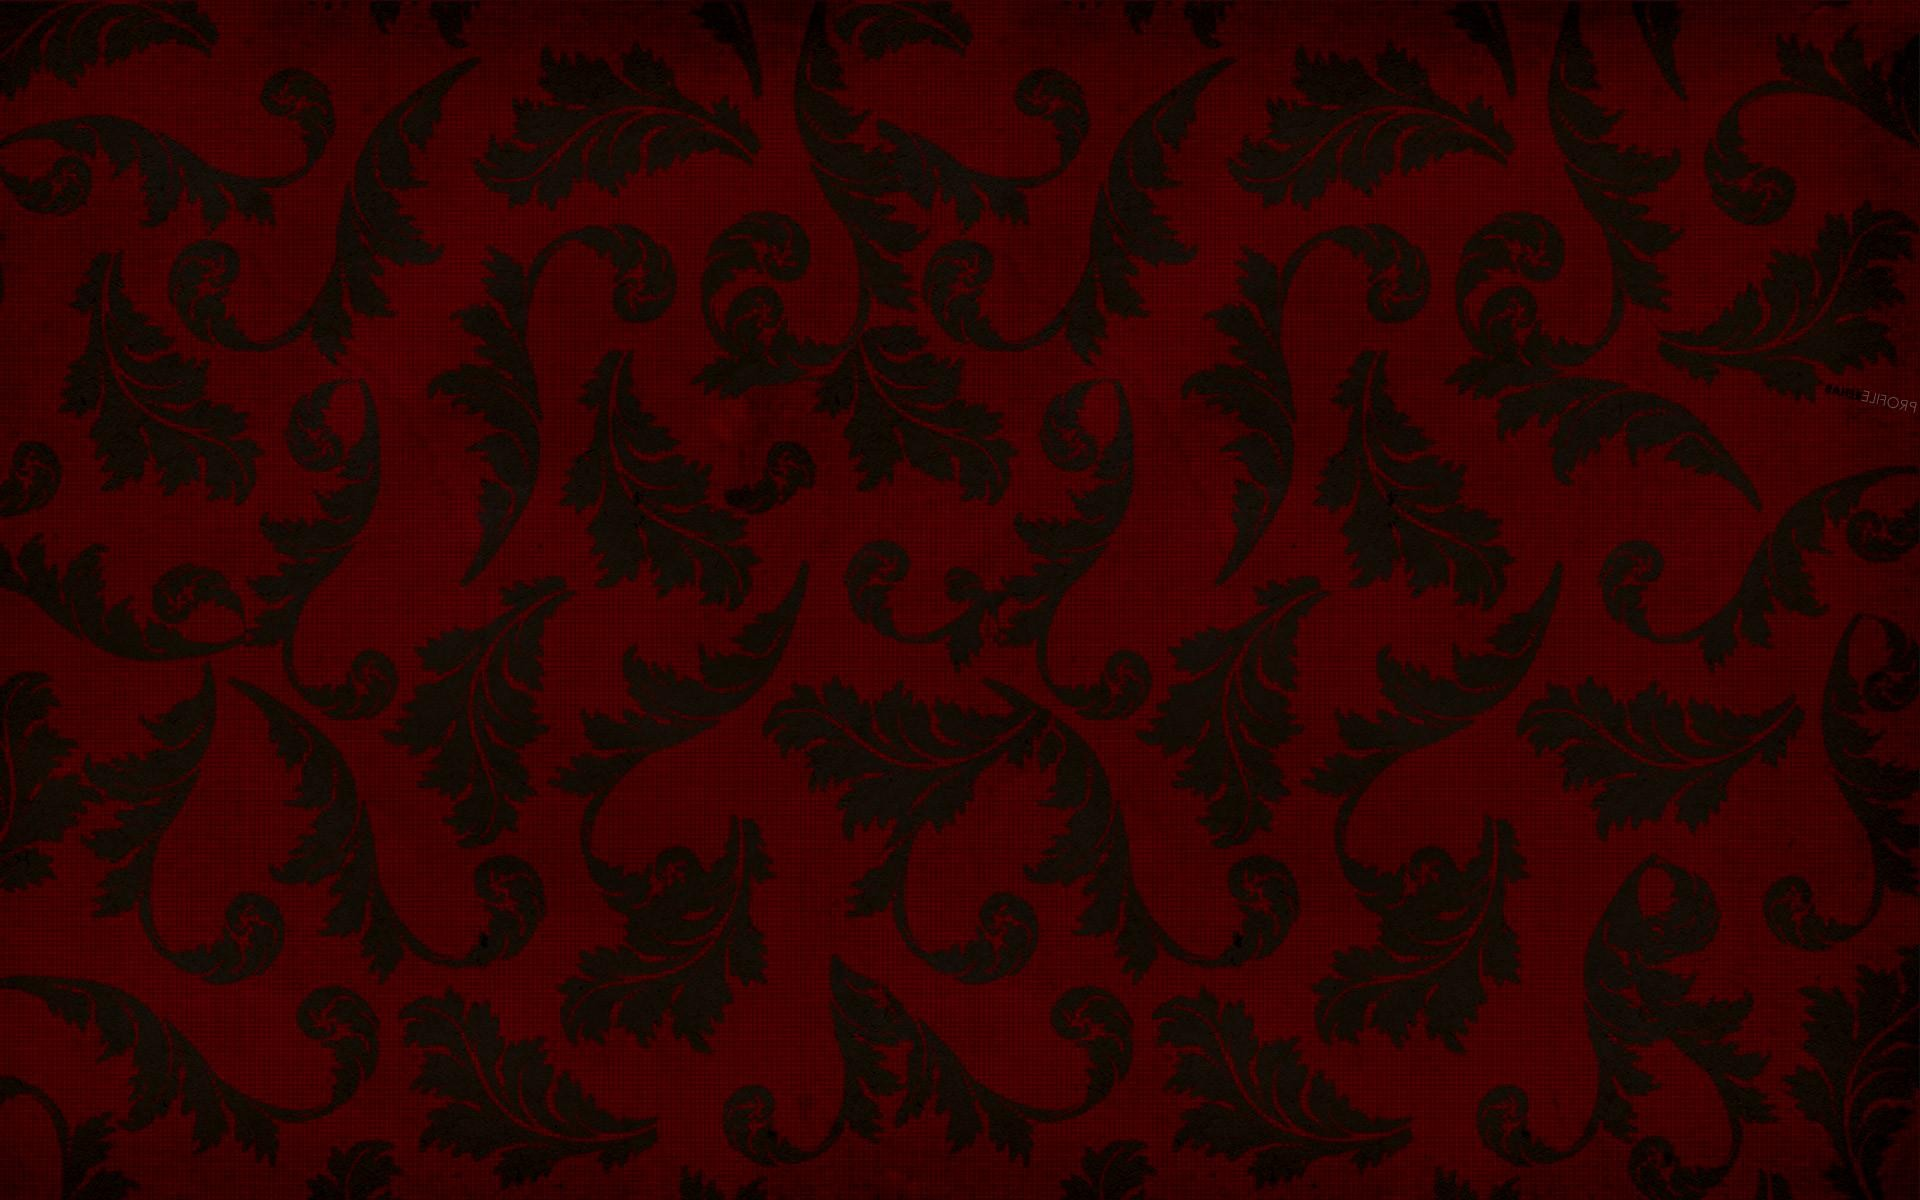 Red And Black Vintage Wallpaper 16 Desktop Wallpaper ...